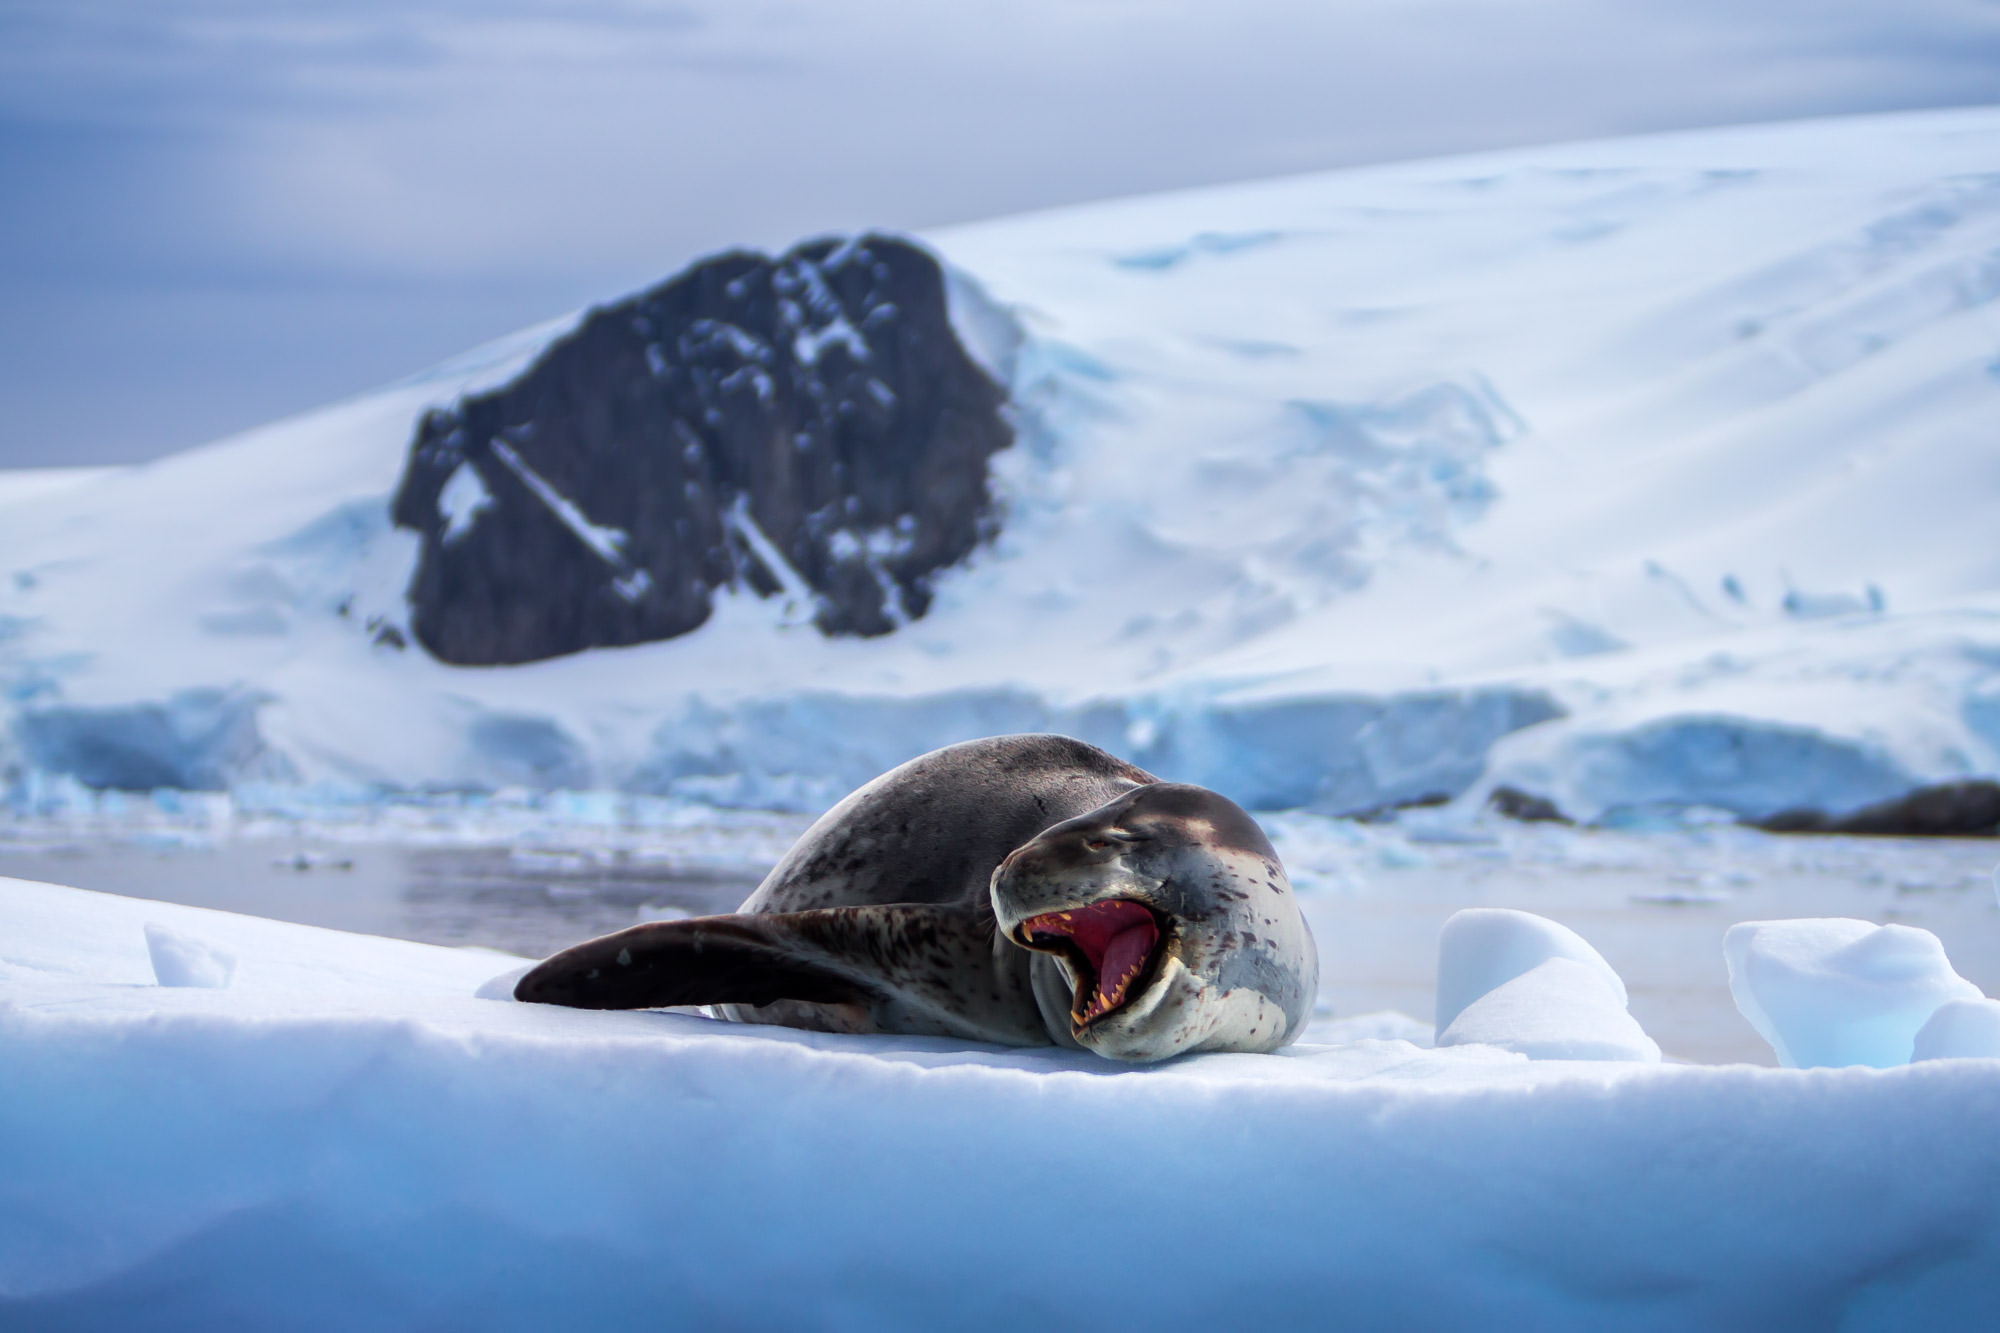 Seal, Leopard Seal, Antarctica, limited edition, photograph, fine art, wildlife, photo